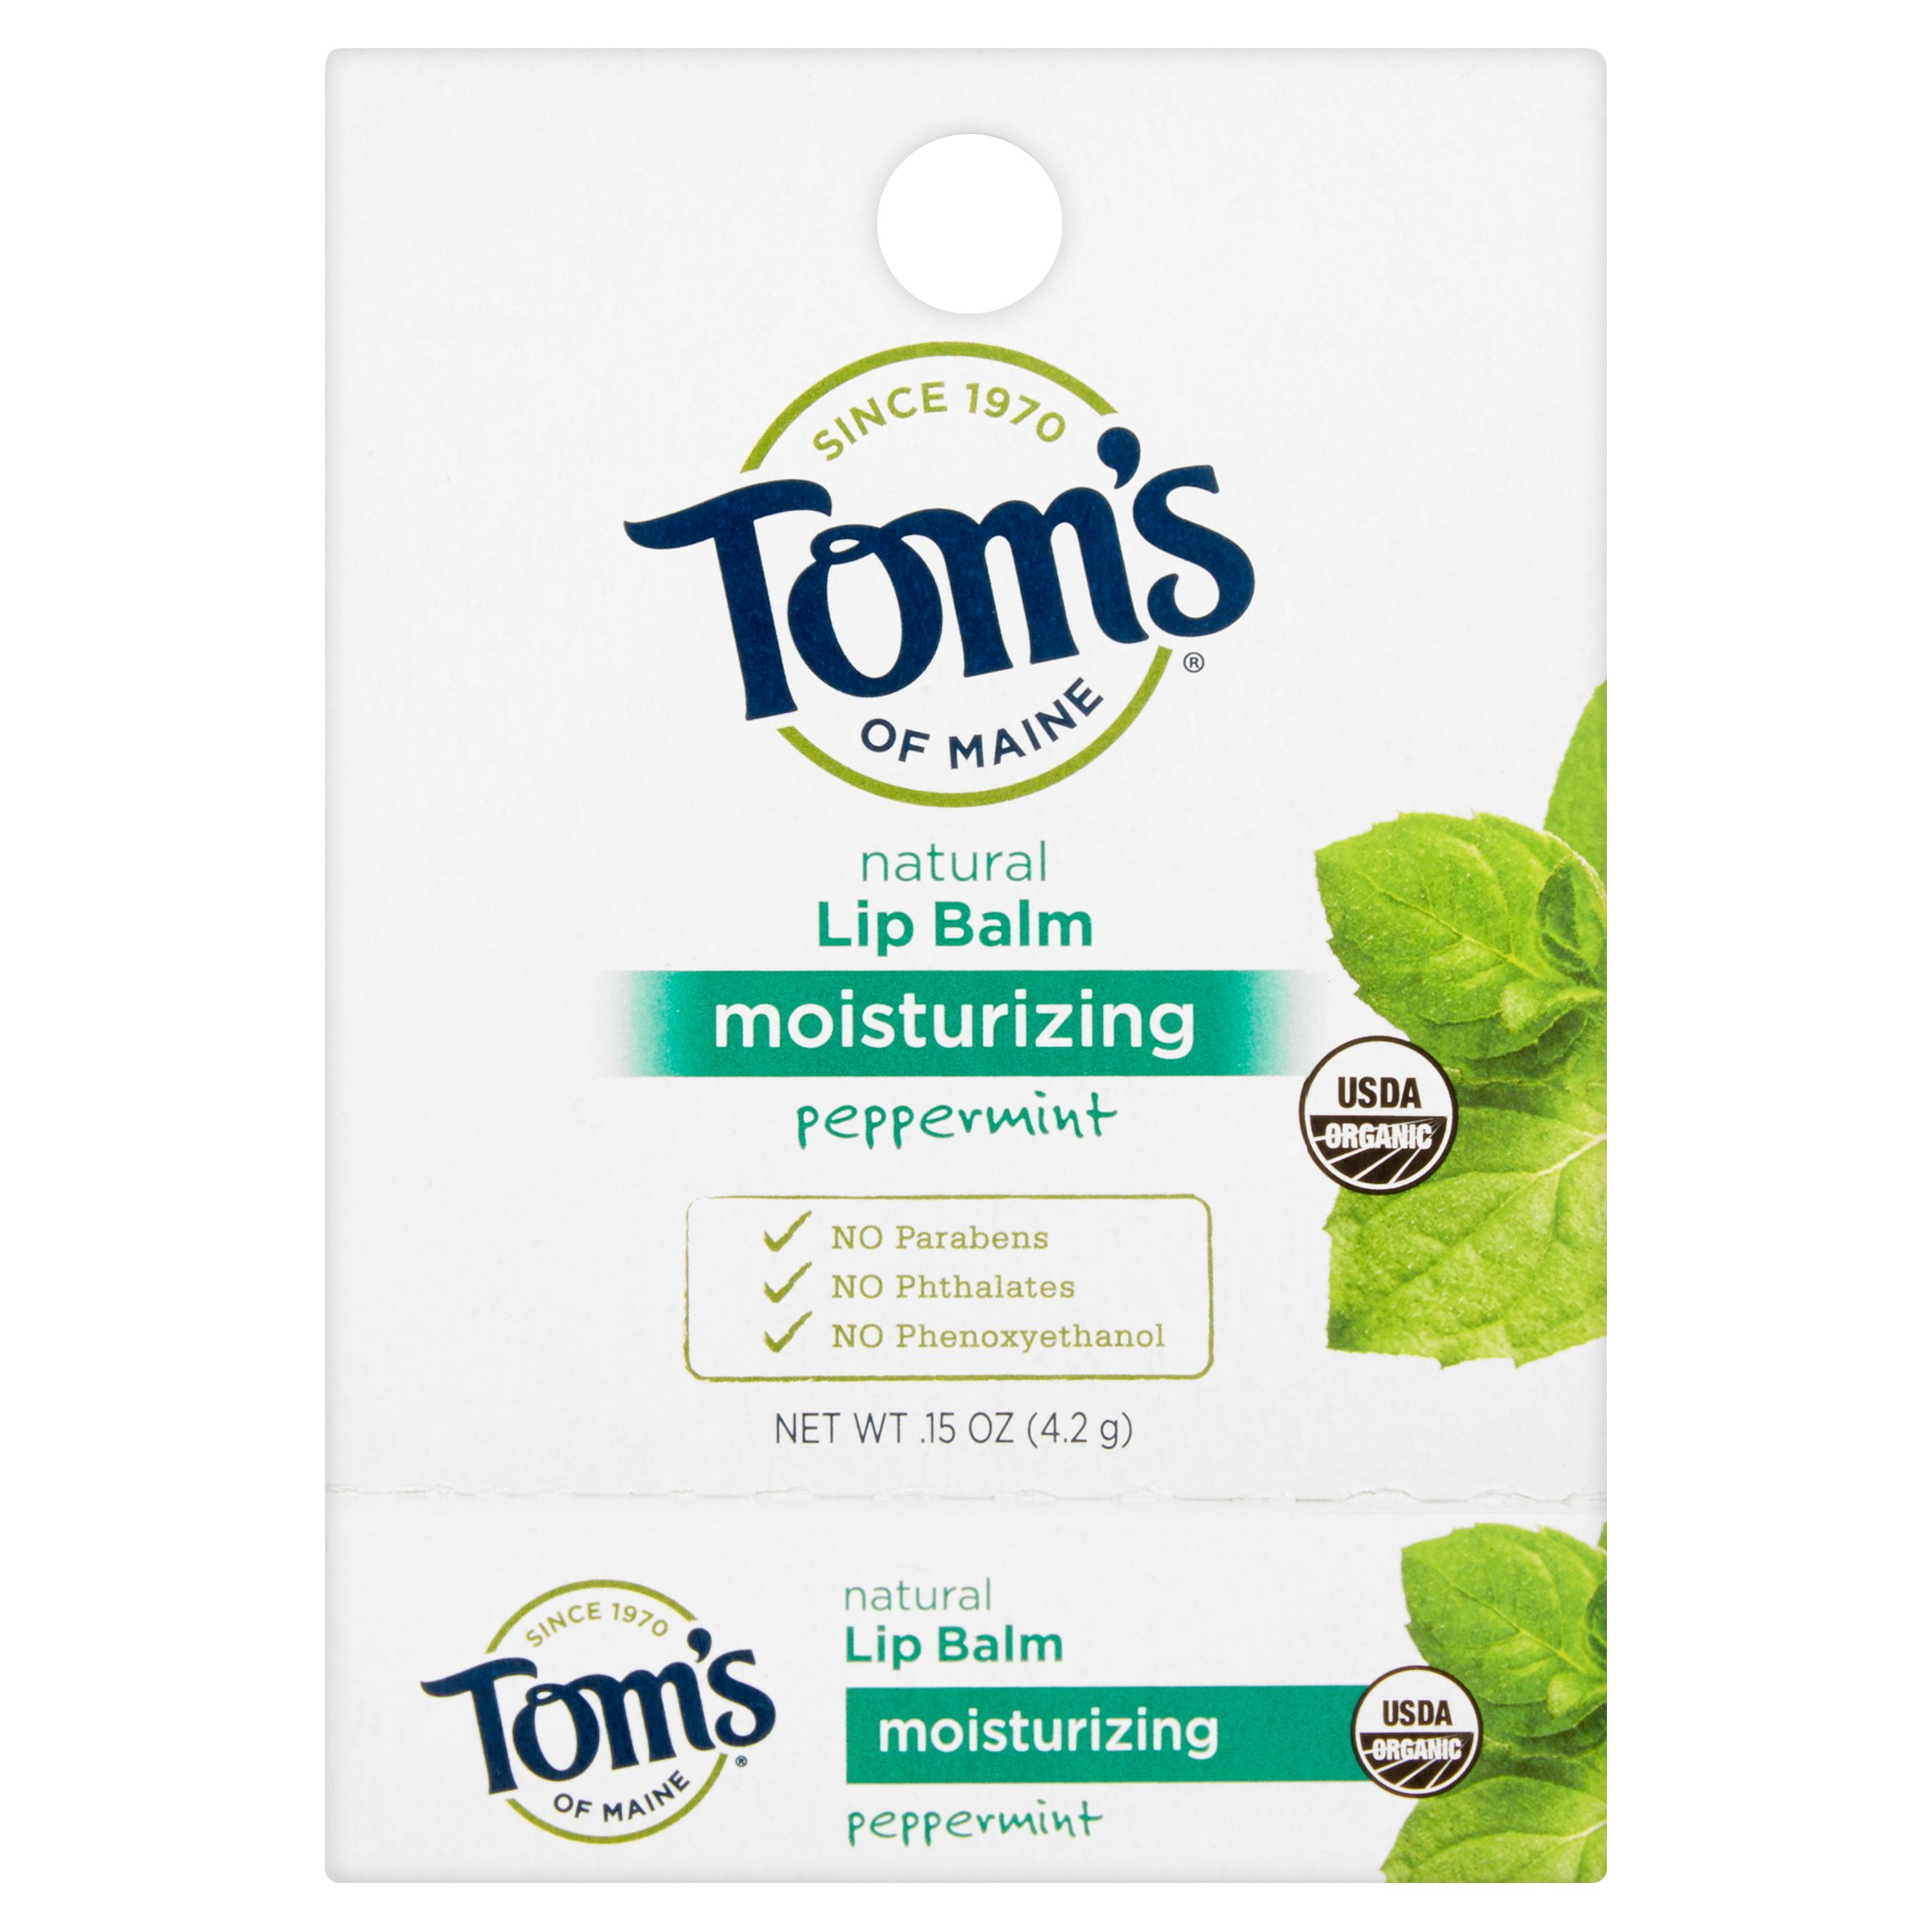 Tom's of Maine Peppermint Moisturizing Natural Lip Balm, .15 oz